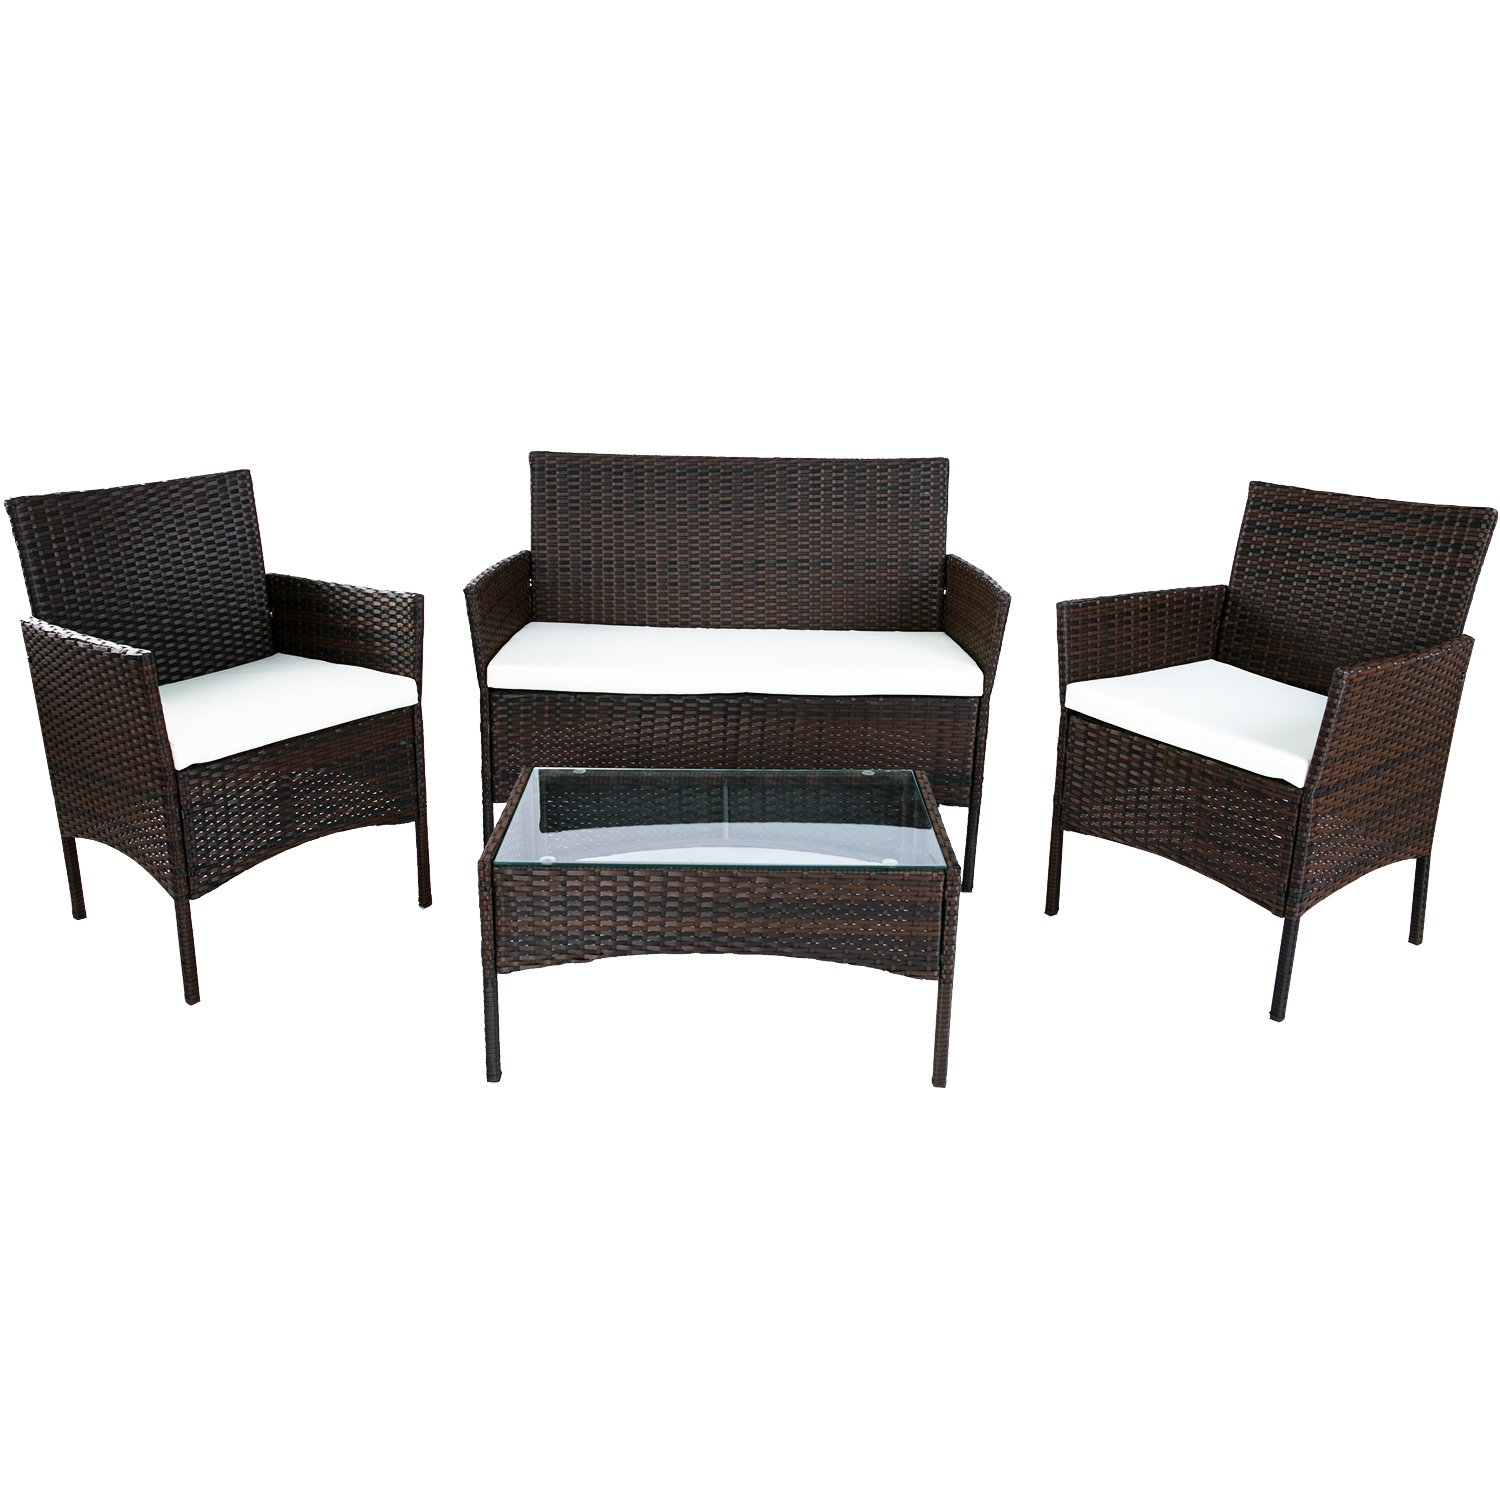 Merax 4 PC Outdoor Garden Rattan Patio Furniture Set Cushioned Seat Wicker  Sofa (Brown) - Shop Amazon.com Patio Furniture Sets